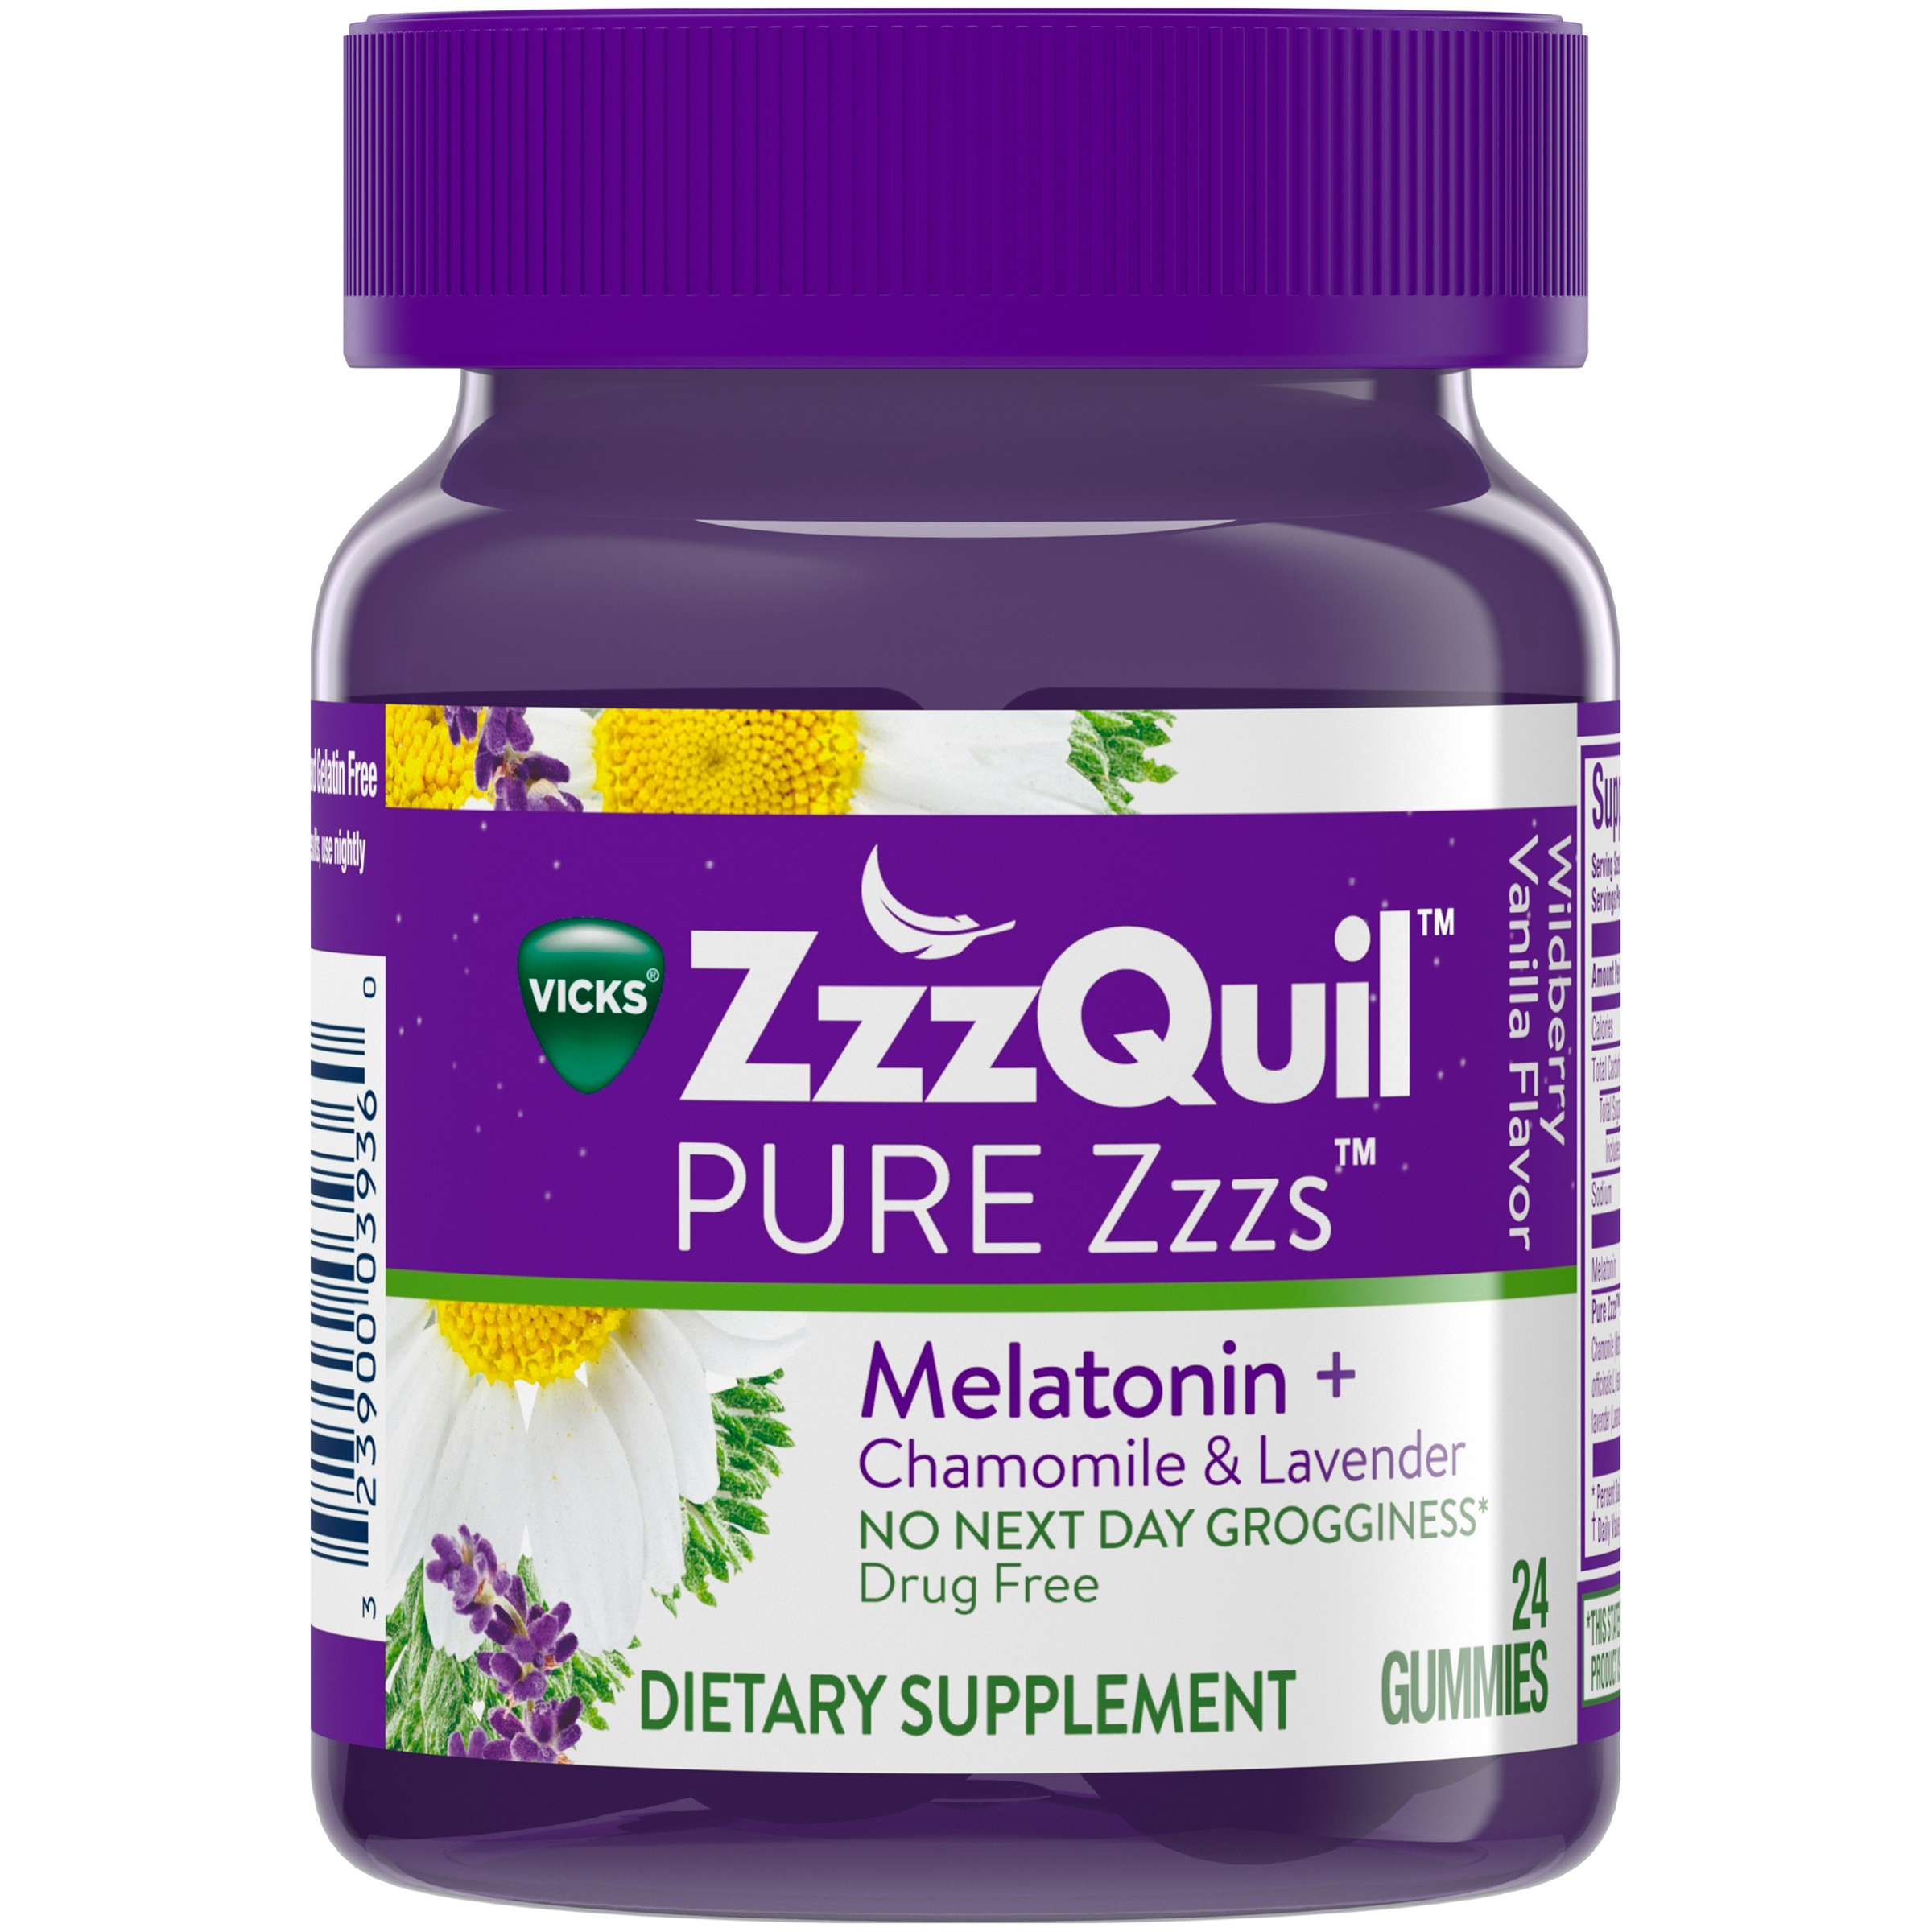 Vicks ZzzQuil PURE Zzzs Melatonin Sleep Aid Gummies, 24 Count